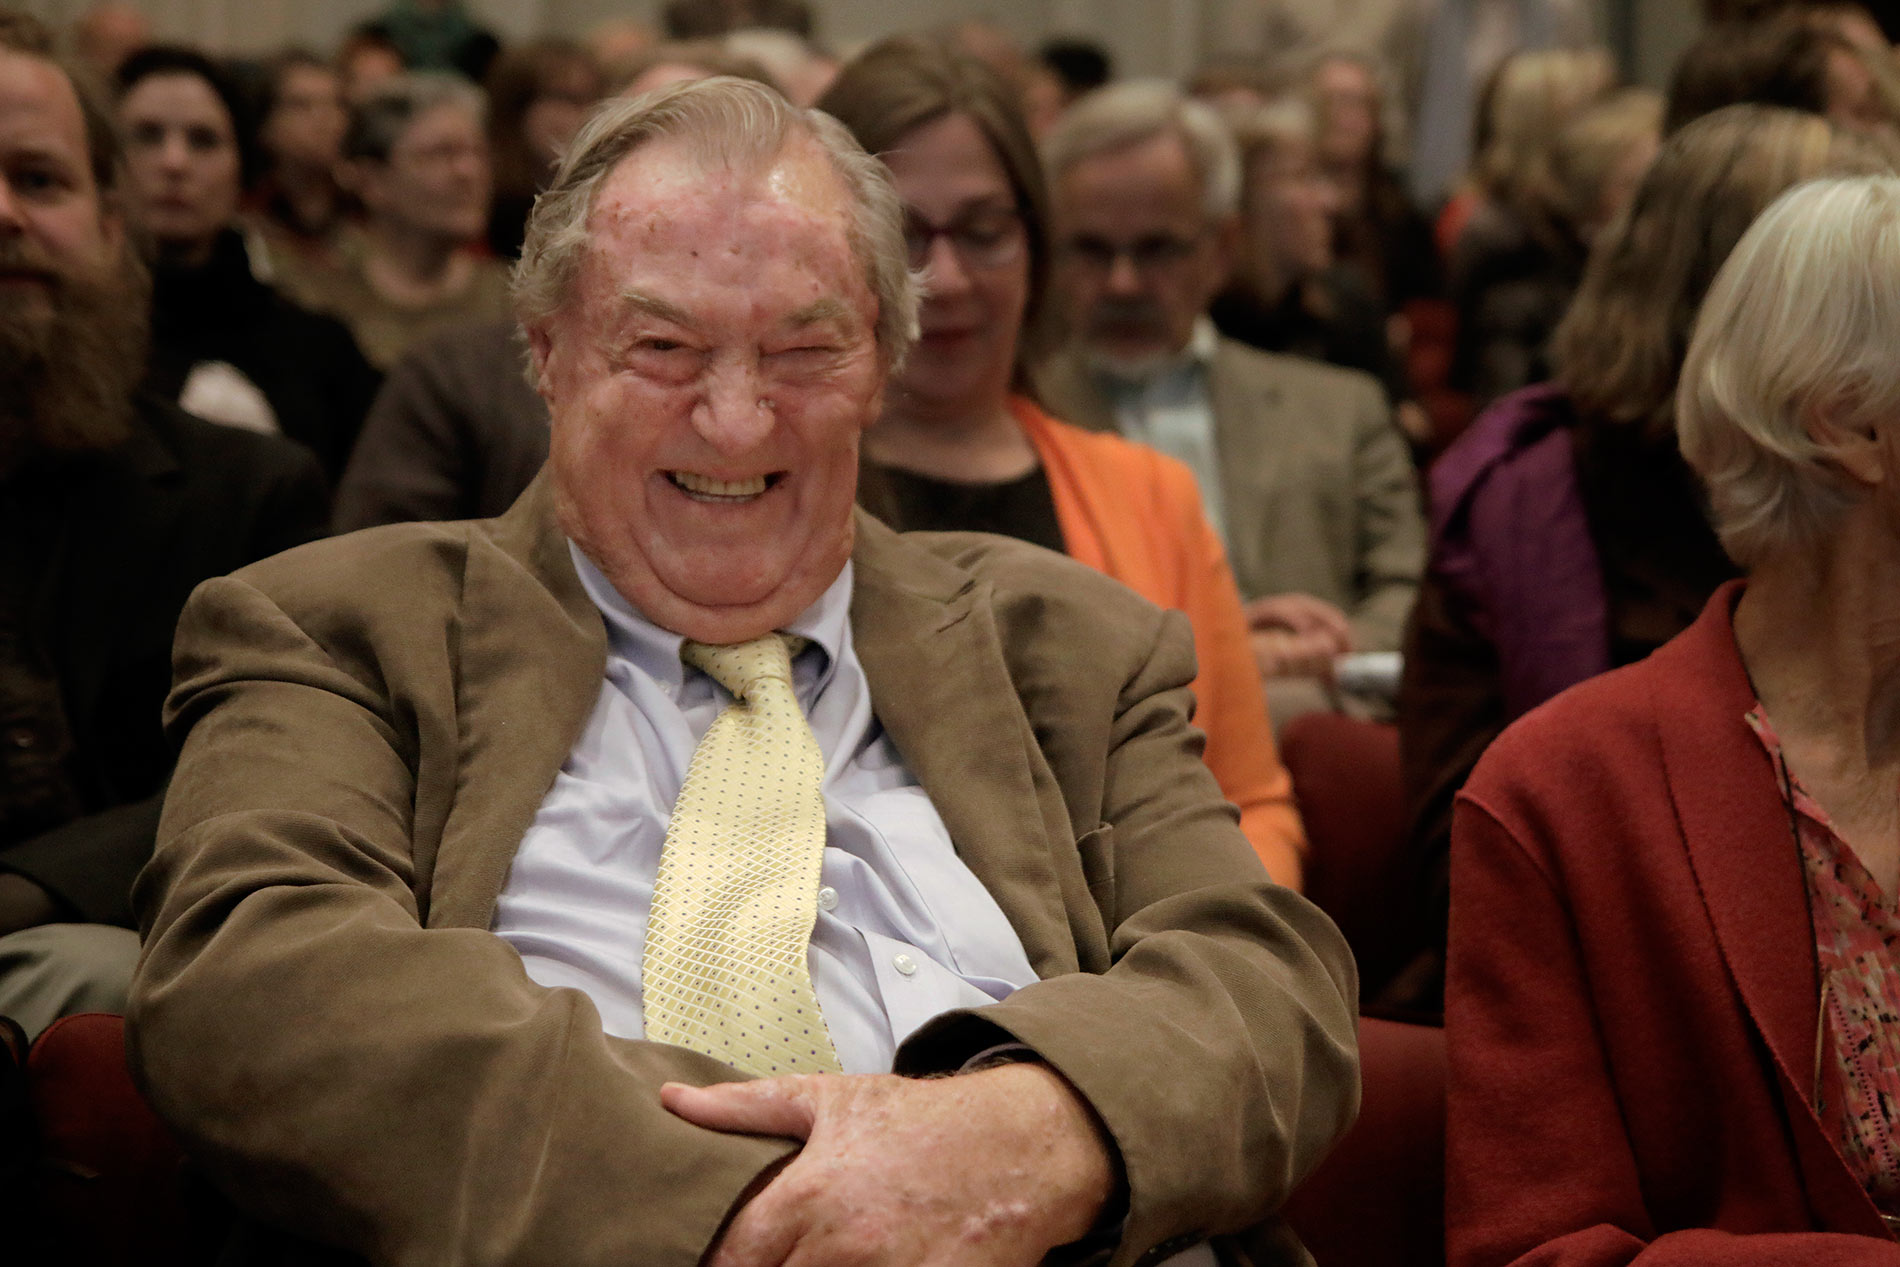 Richard Leakey, the Kenyan paleoanthropologist, visiting the Great Hall of Helsinki University on Wednesday April 6 2015. Picture: Tony Öhberg for Finland Today